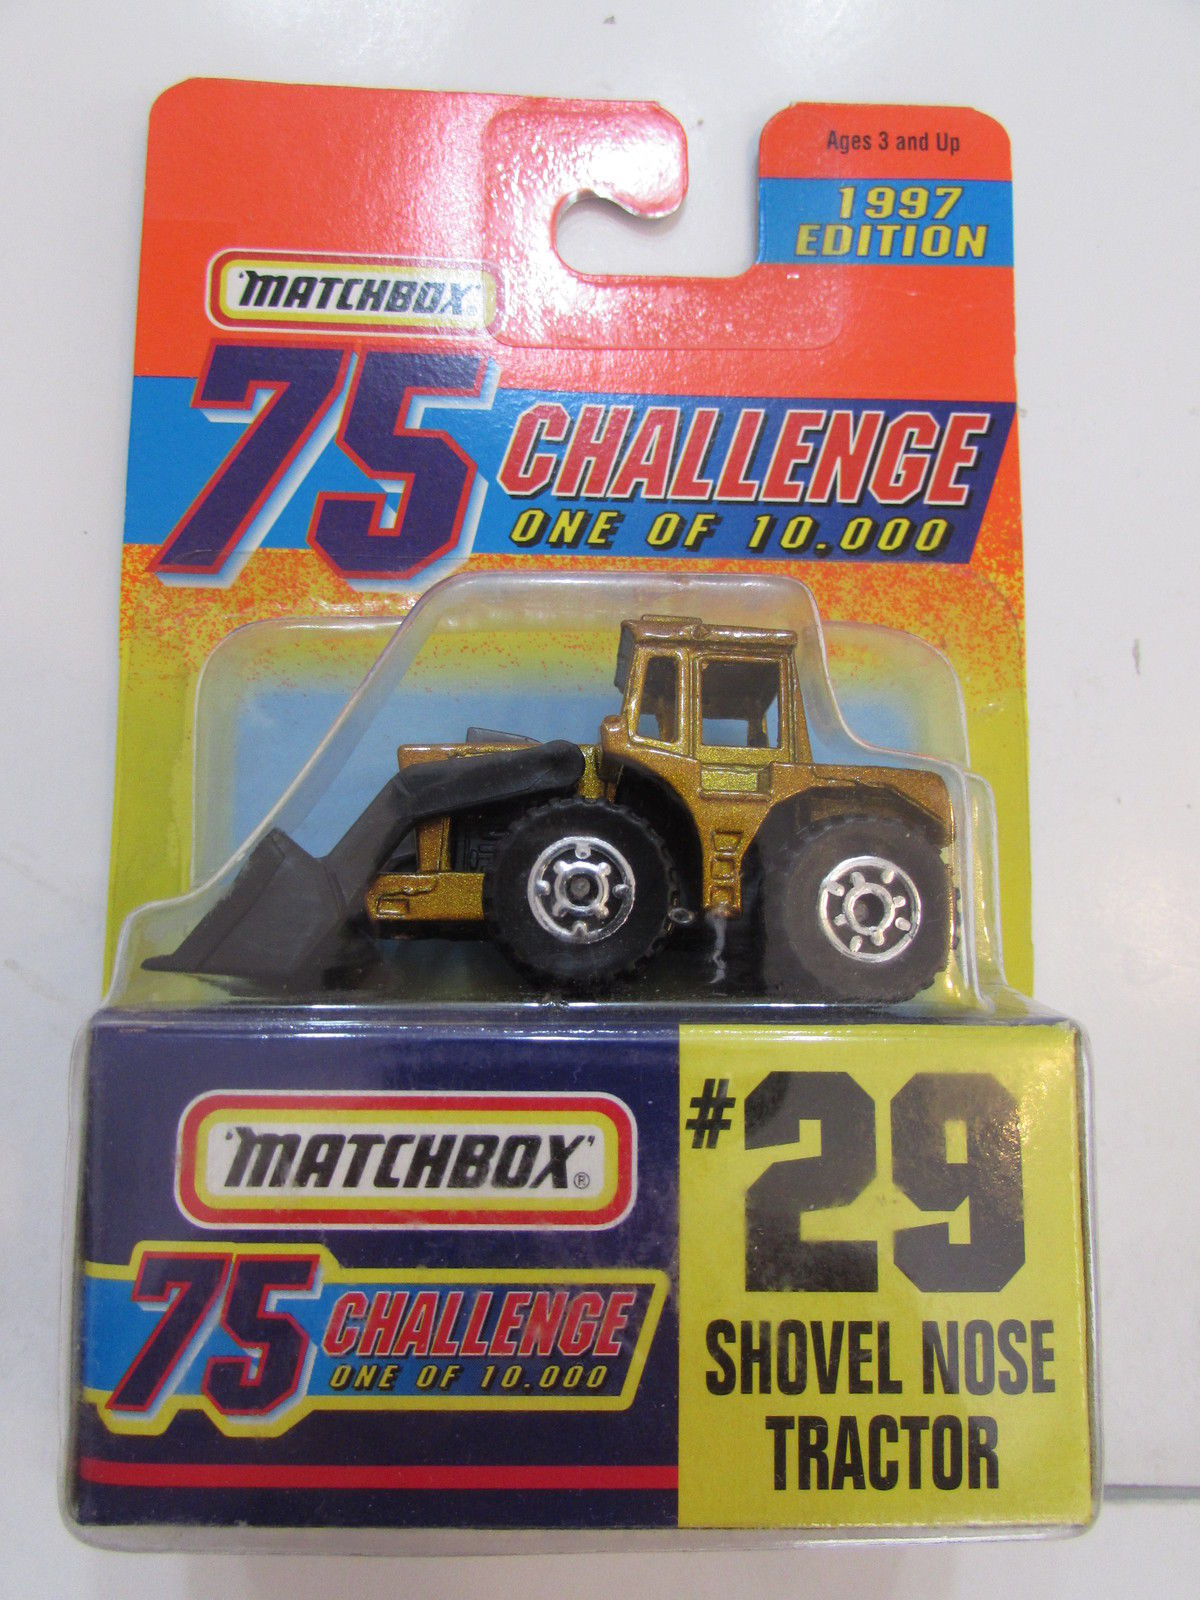 MATCHBOX CHALLENGE 75 1997 EDITION #29 SHOVEL NOSE TRACTOR